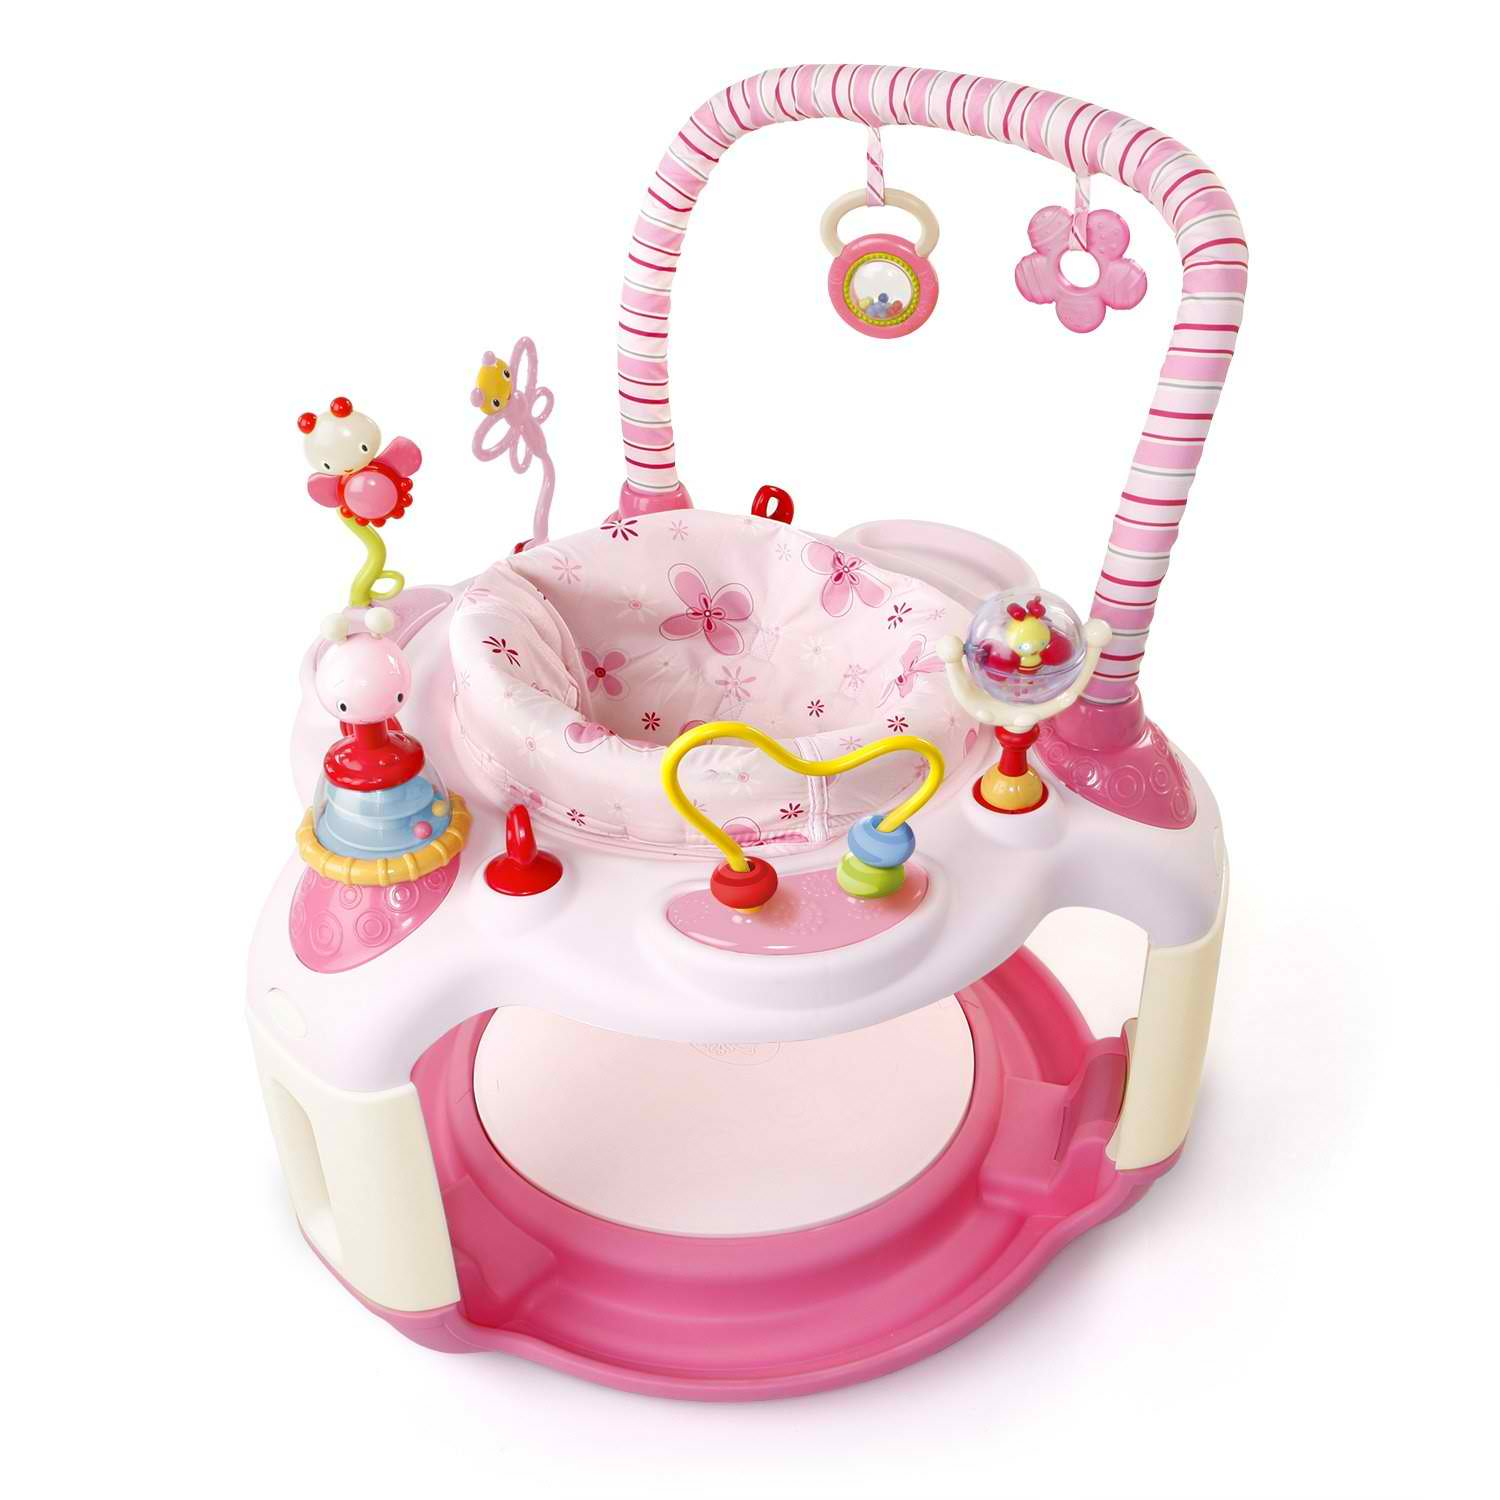 Exersaucer Images Bright Starts Pink Bounce-a-bout Baby Activity Center